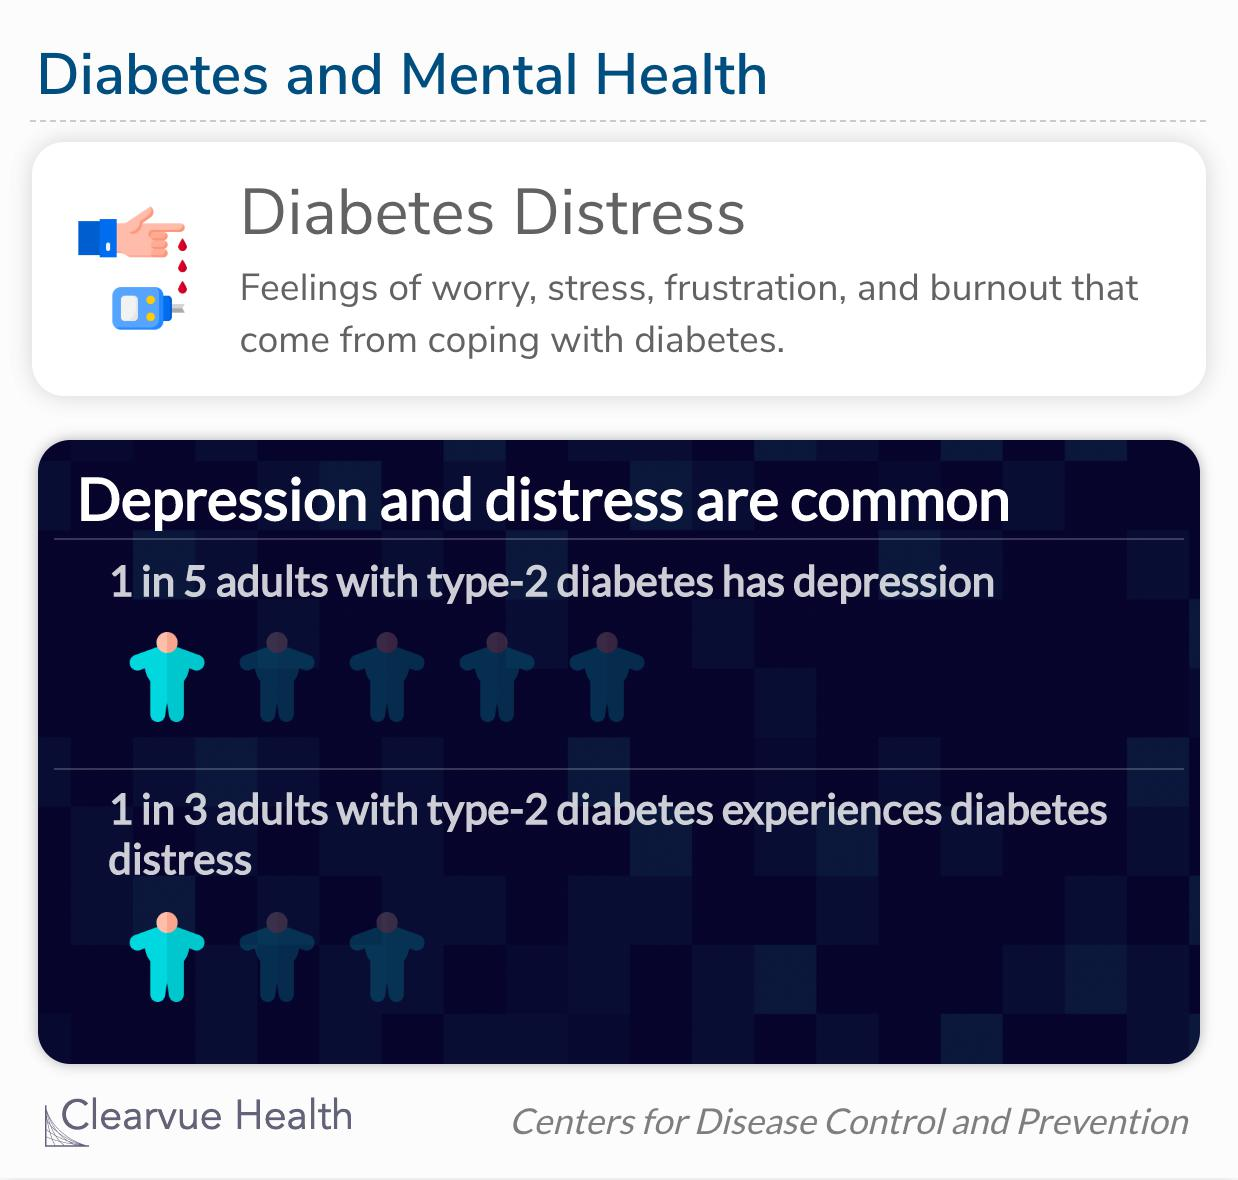 Both depression and diabetes distress can increase risk for serious health complications and early death.